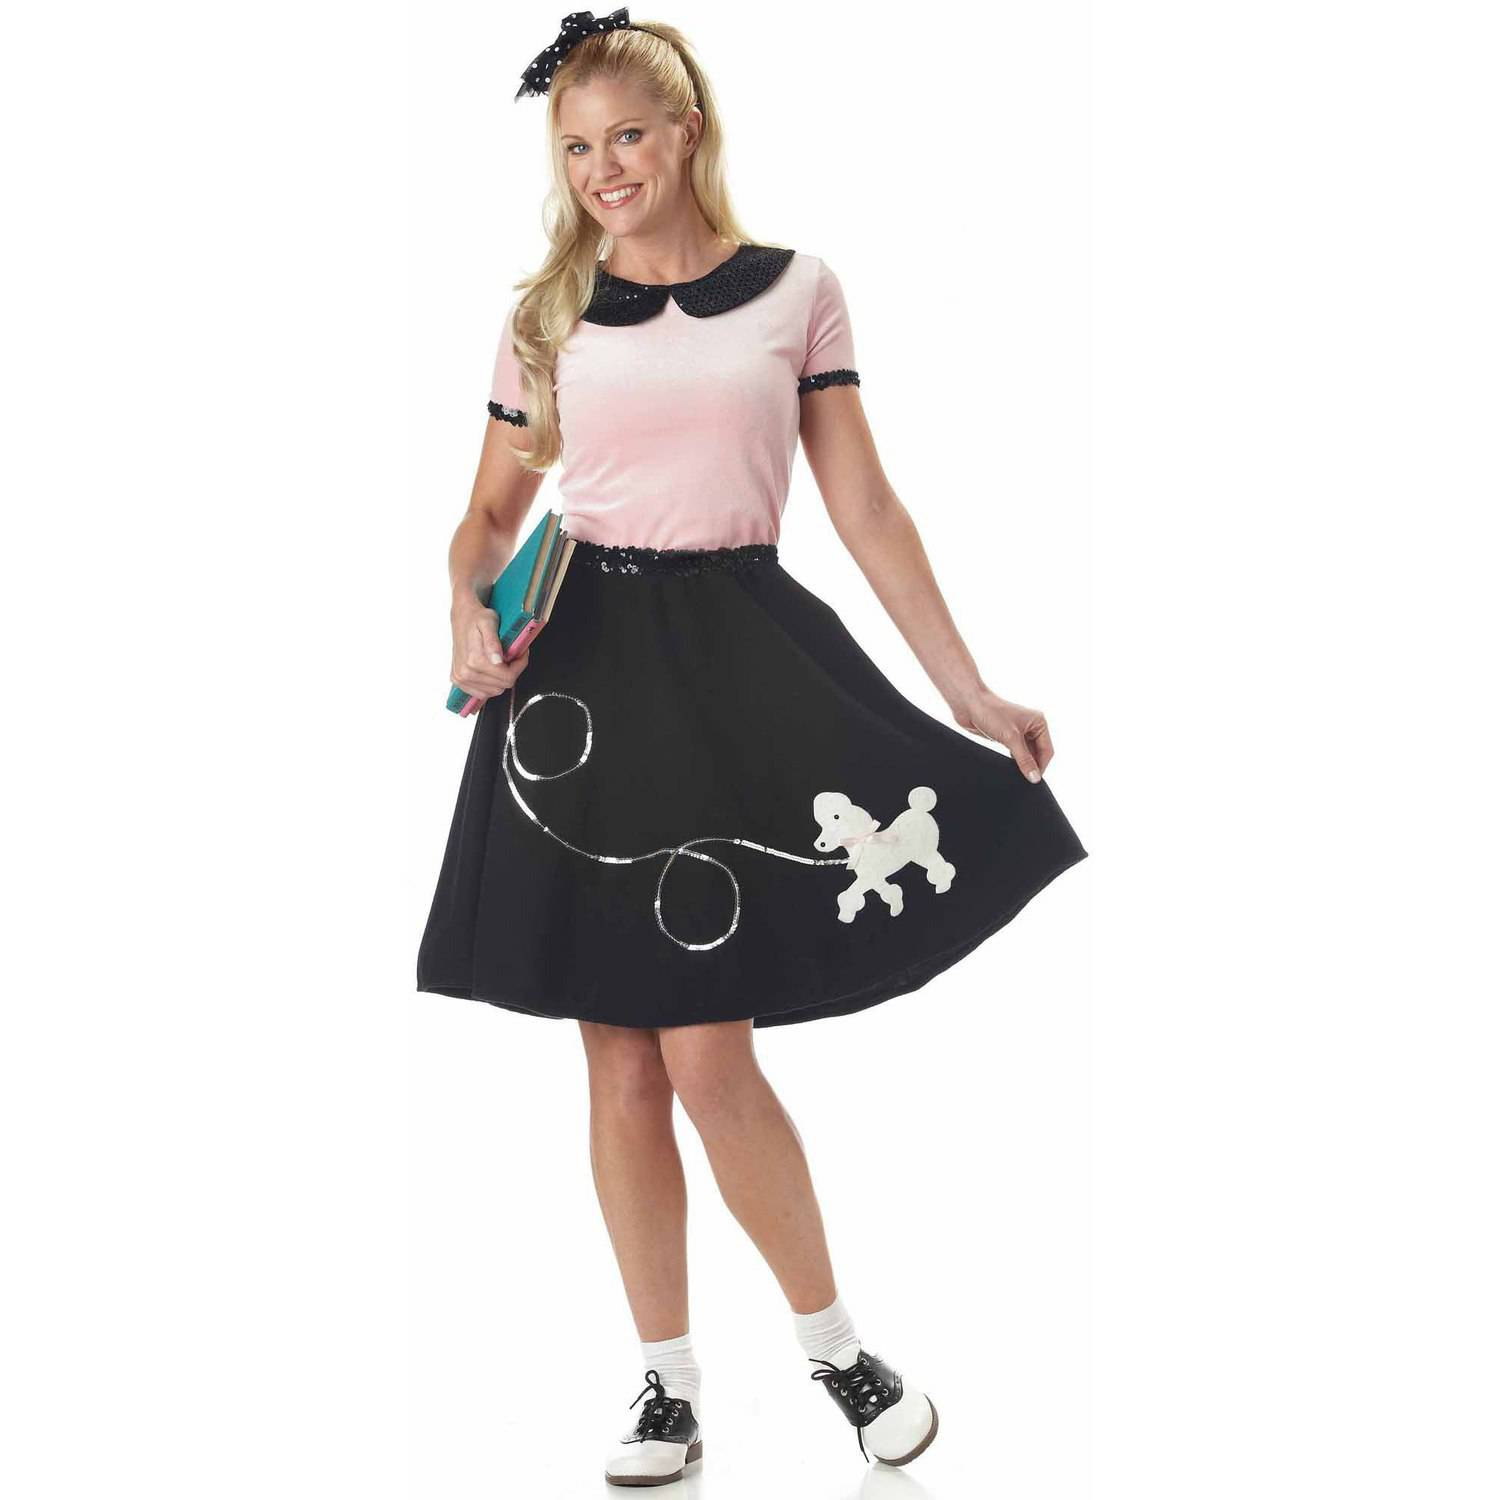 50s Hop With Poodle Skirt Womens Adult Halloween Costume